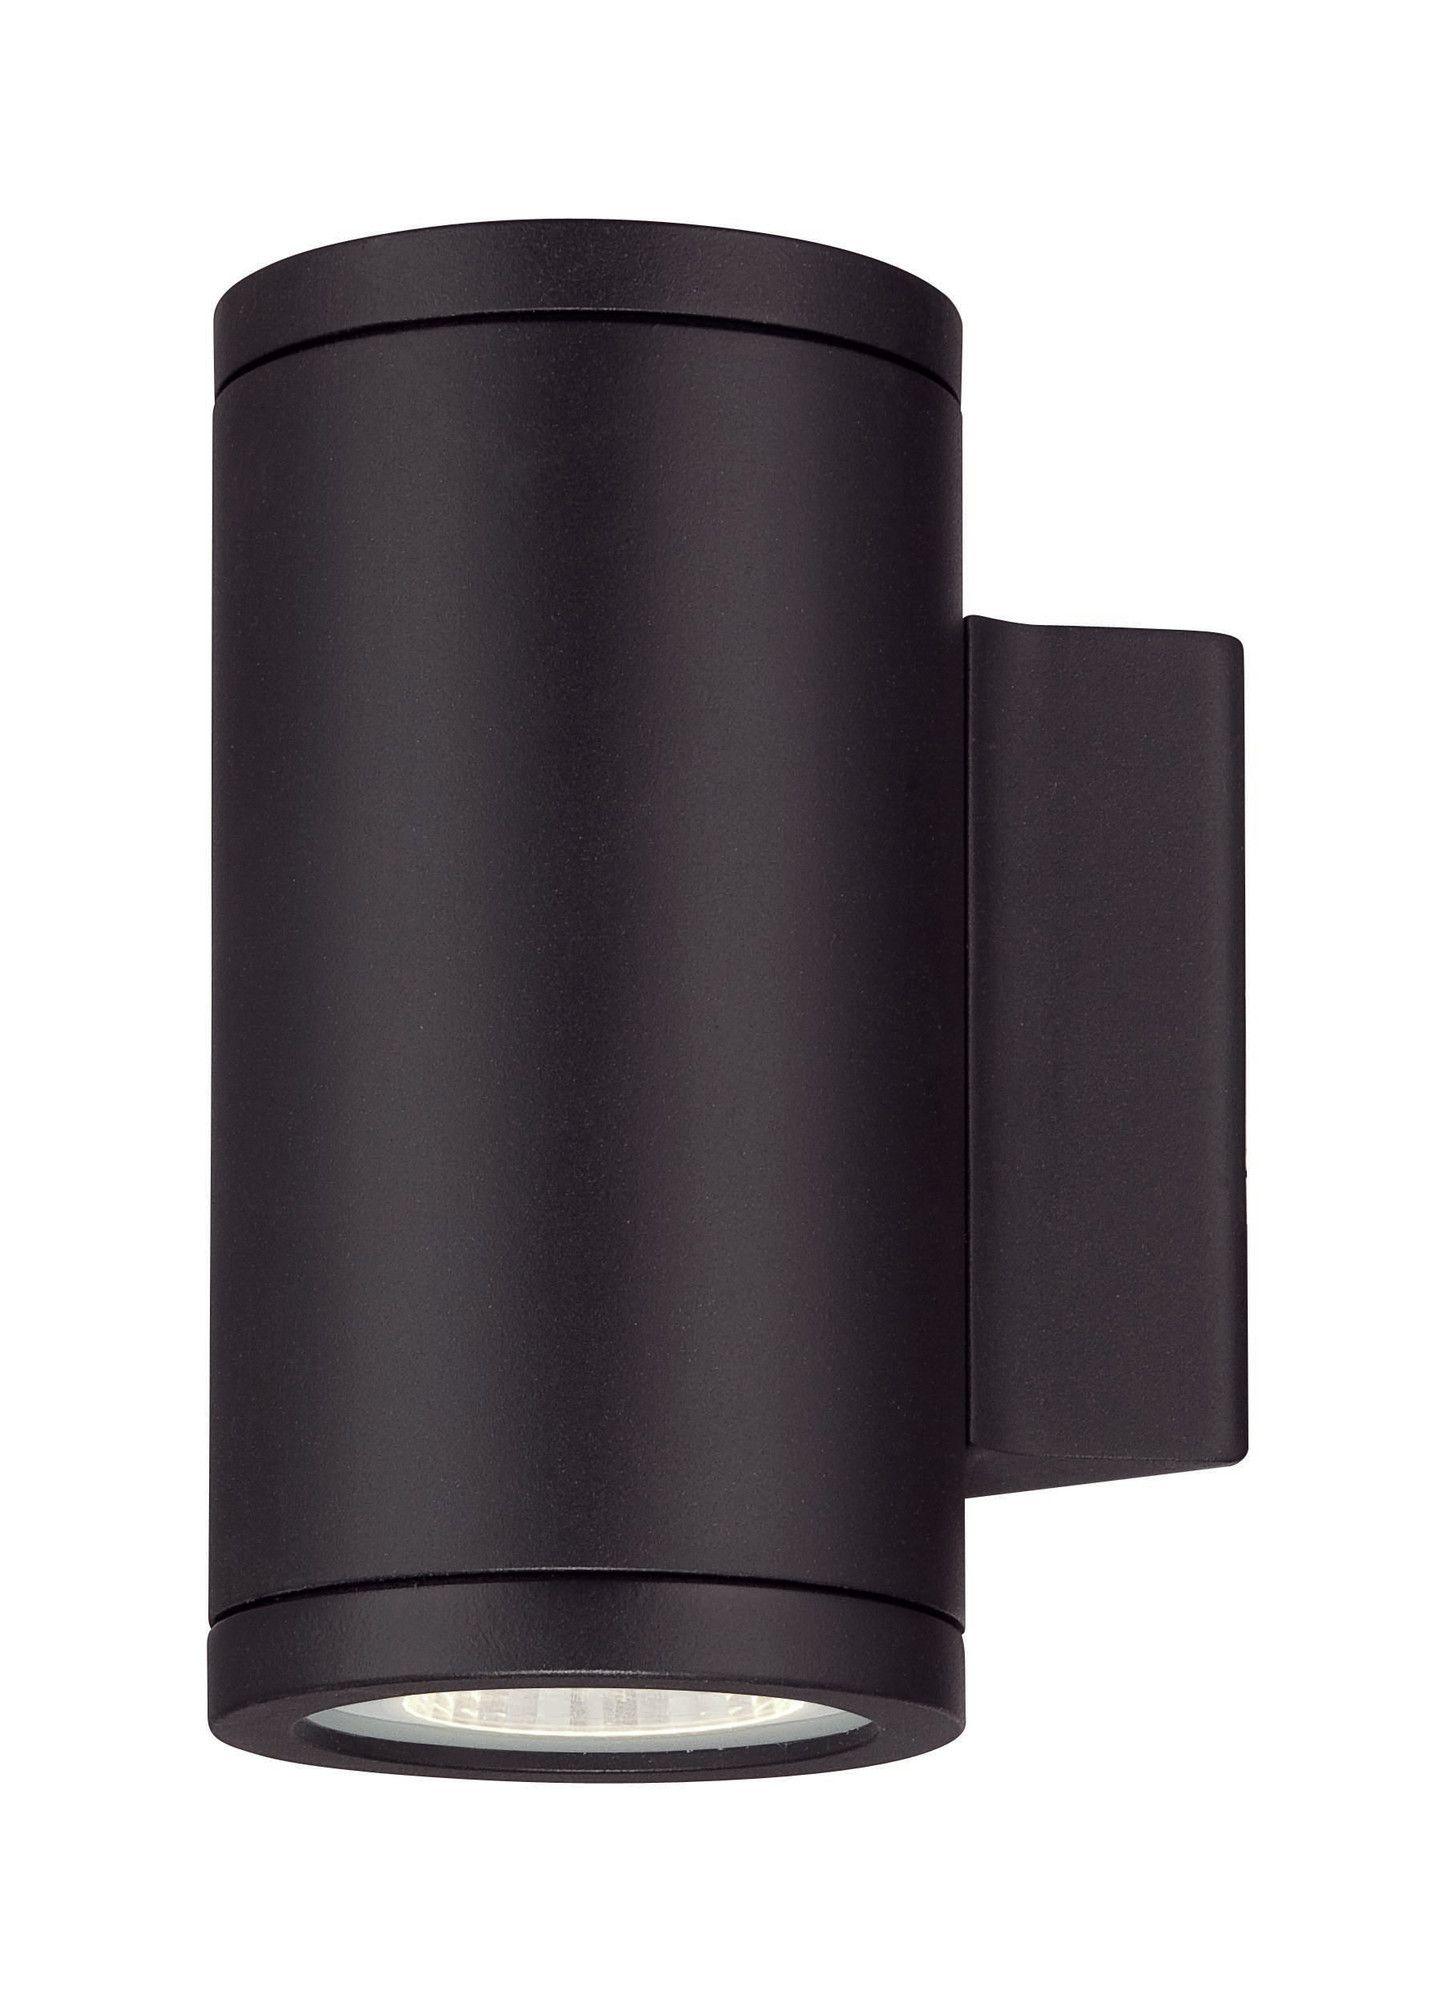 Roxy light outdoor sconce products pinterest products